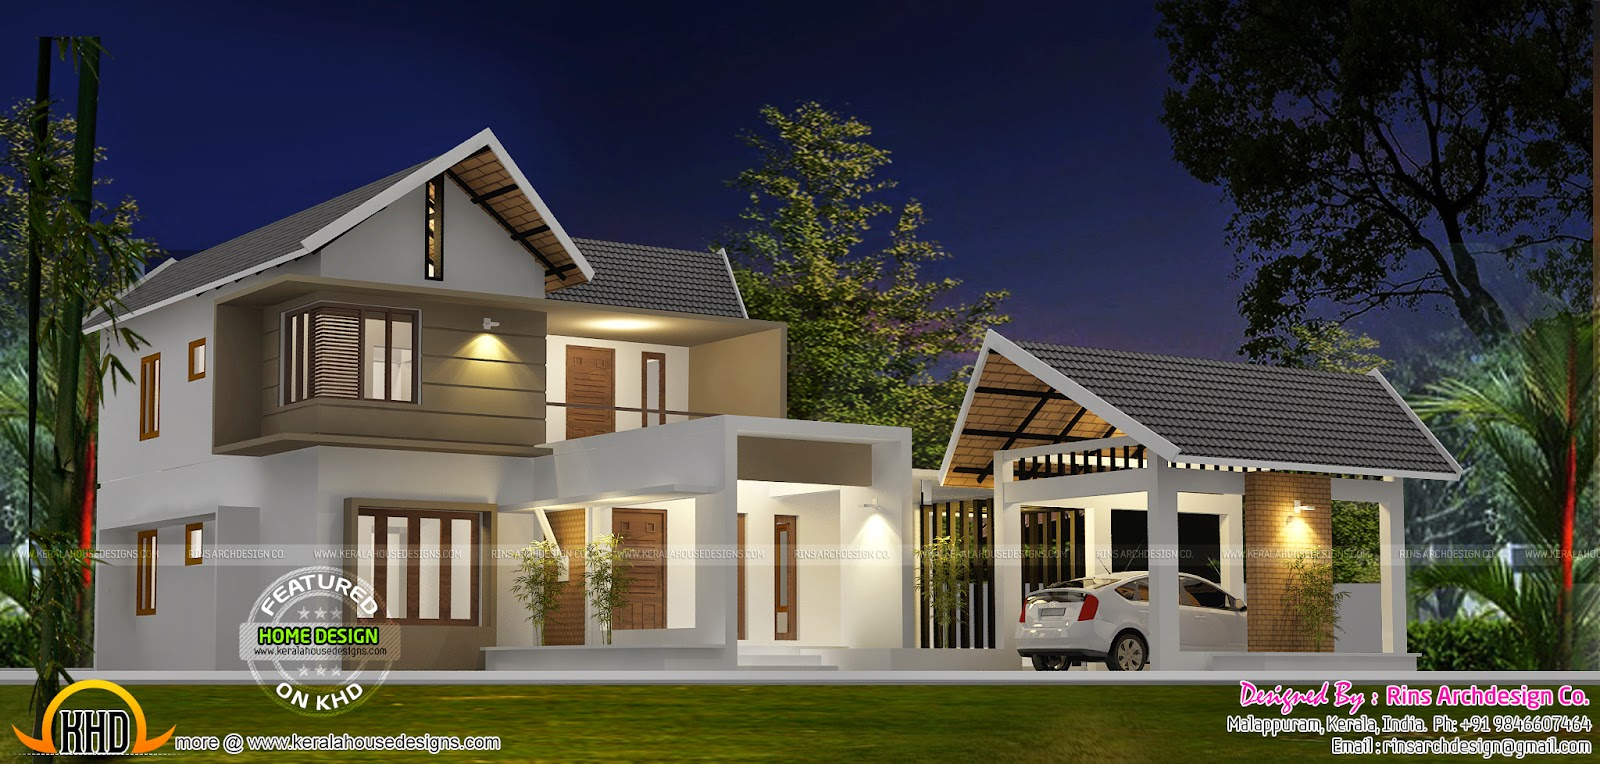 Separate garage house plan kerala home design and floor for Separate garage